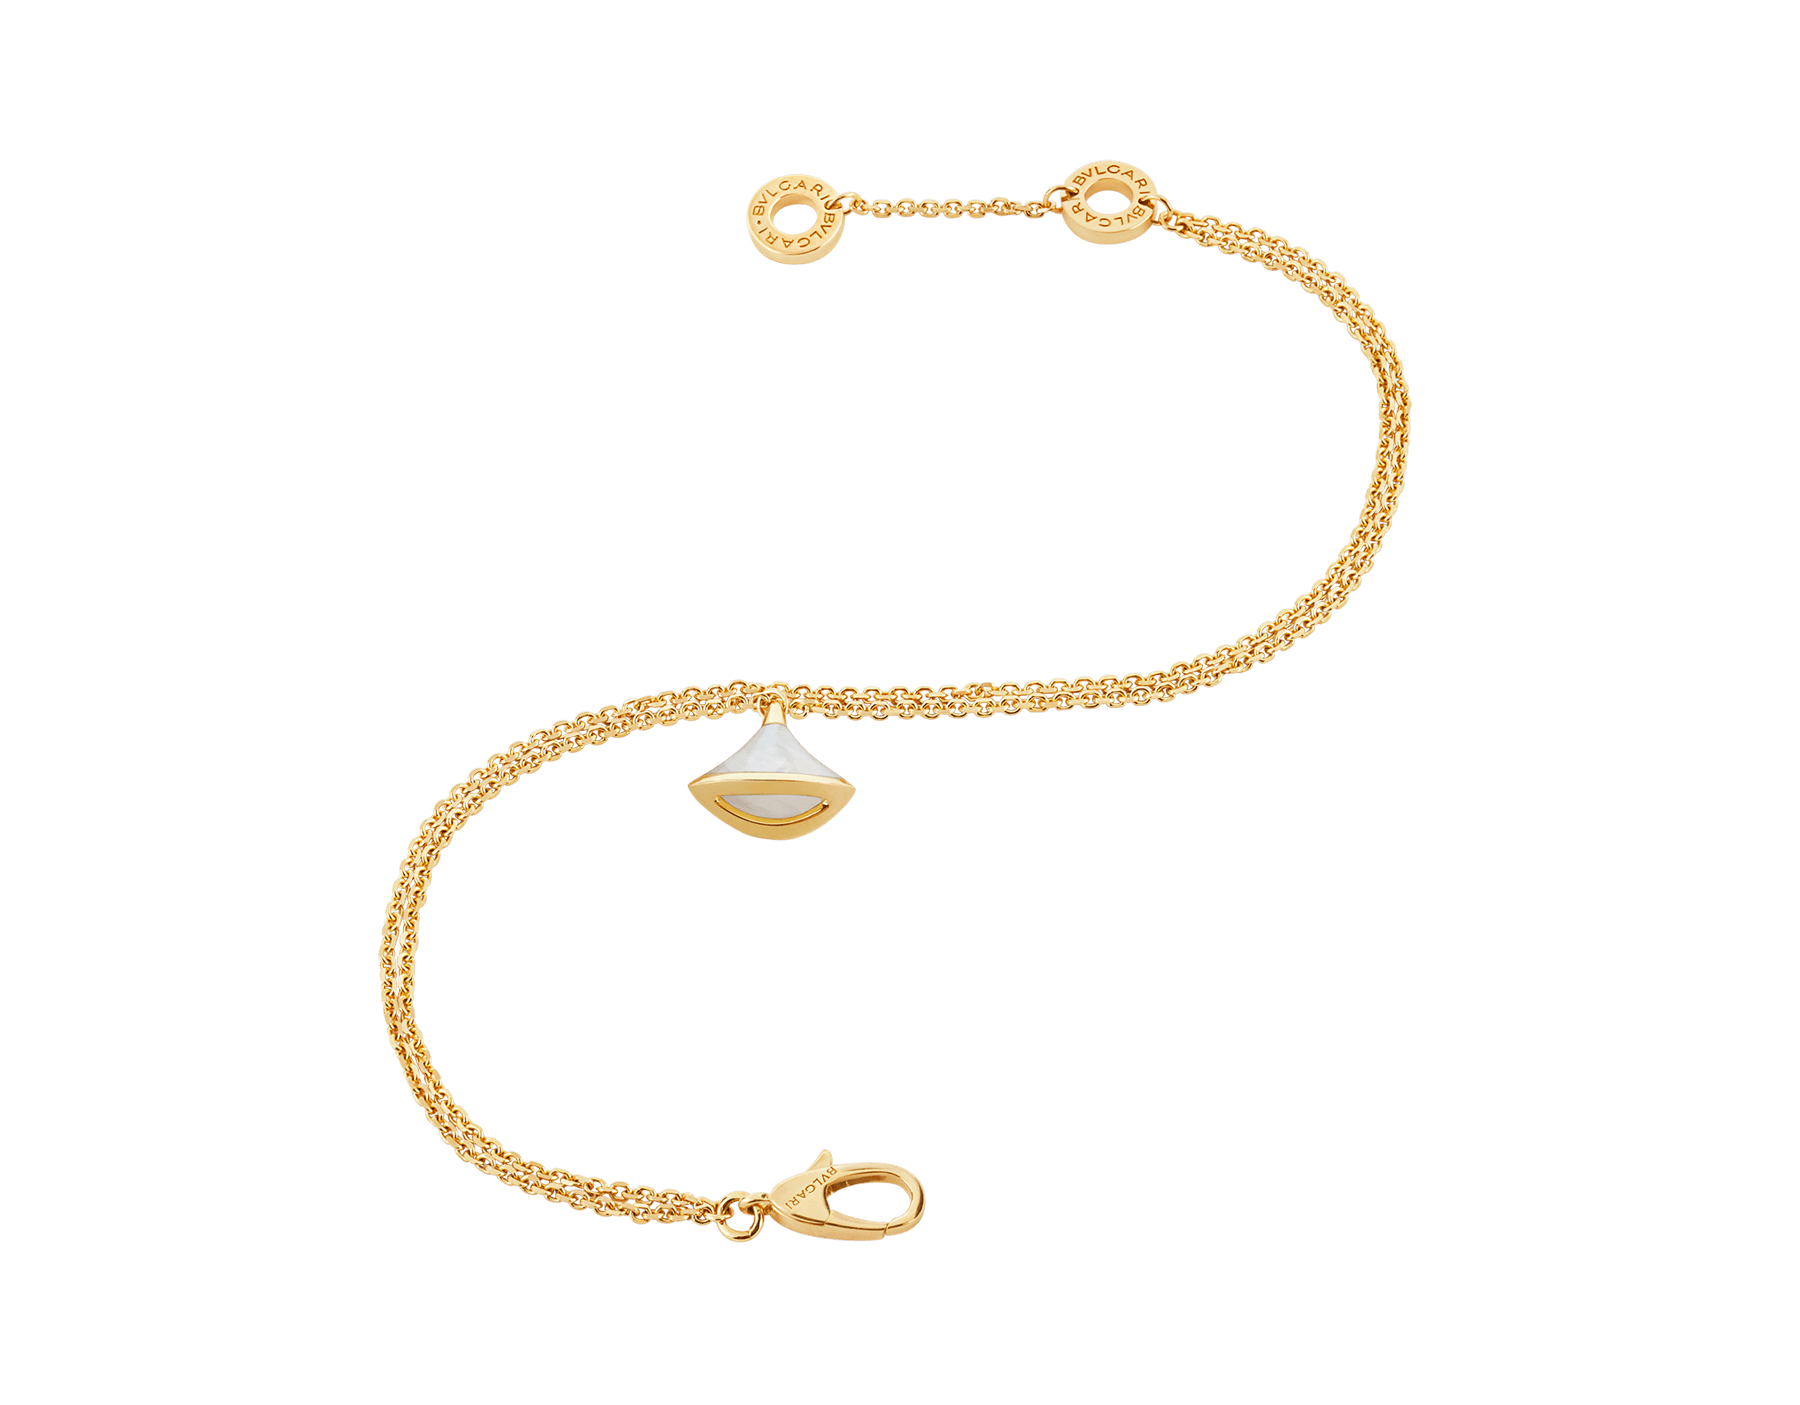 DIVAS' DREAM 18 kt yellow gold bracelet with pendant set with a mother-of-pearl element BR858988 image 3